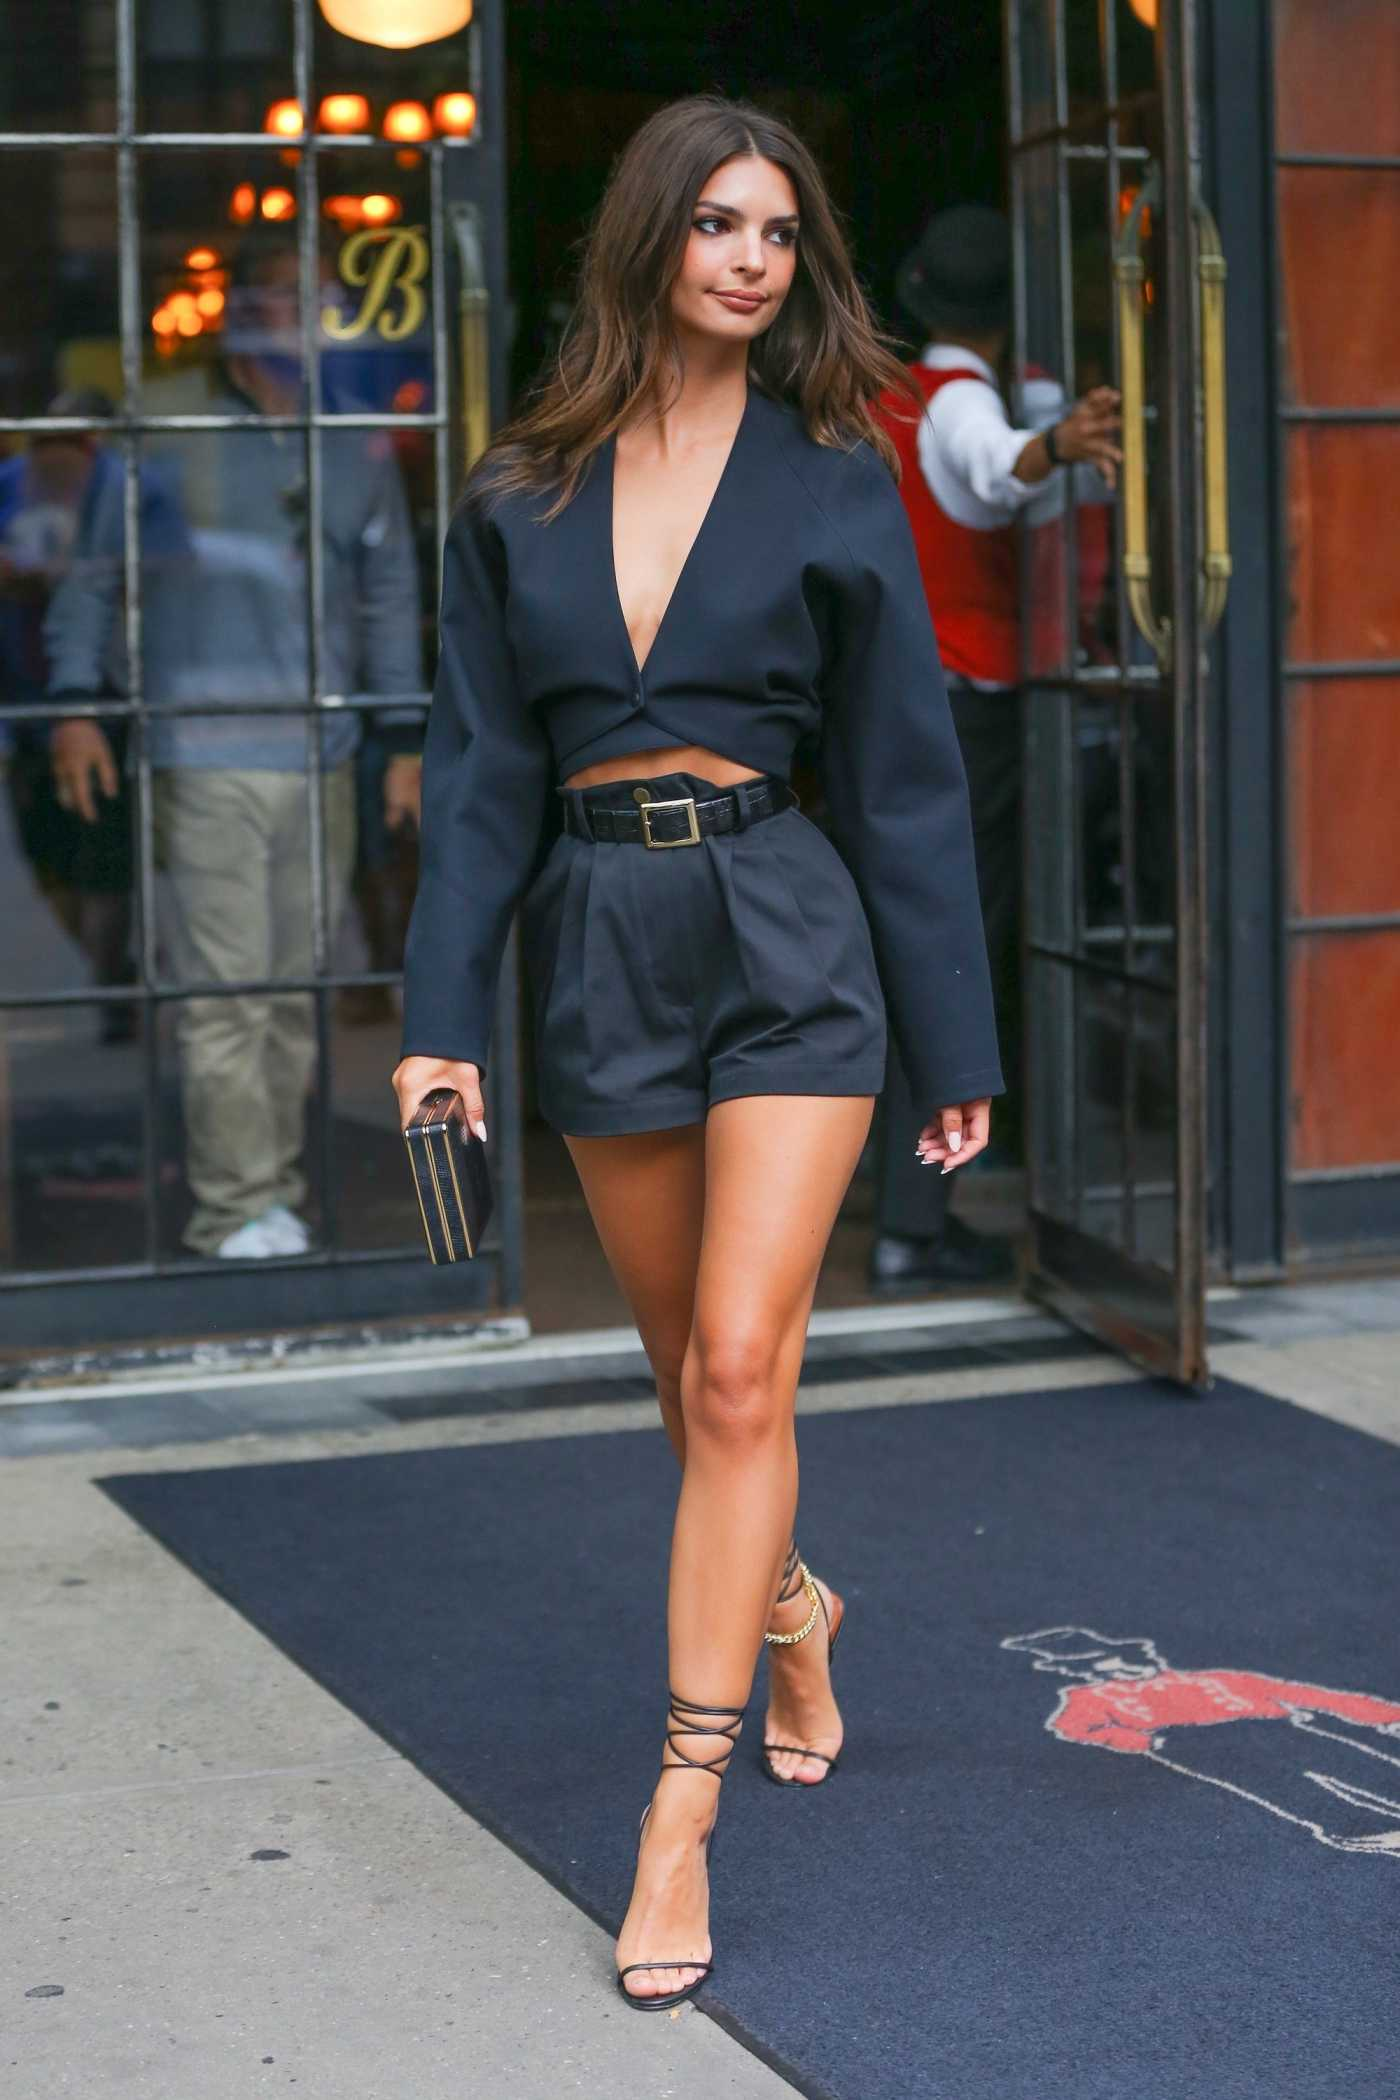 Emily Ratajkowski in a Black Suit Leaves Her Hotel in New York 09/05/2019